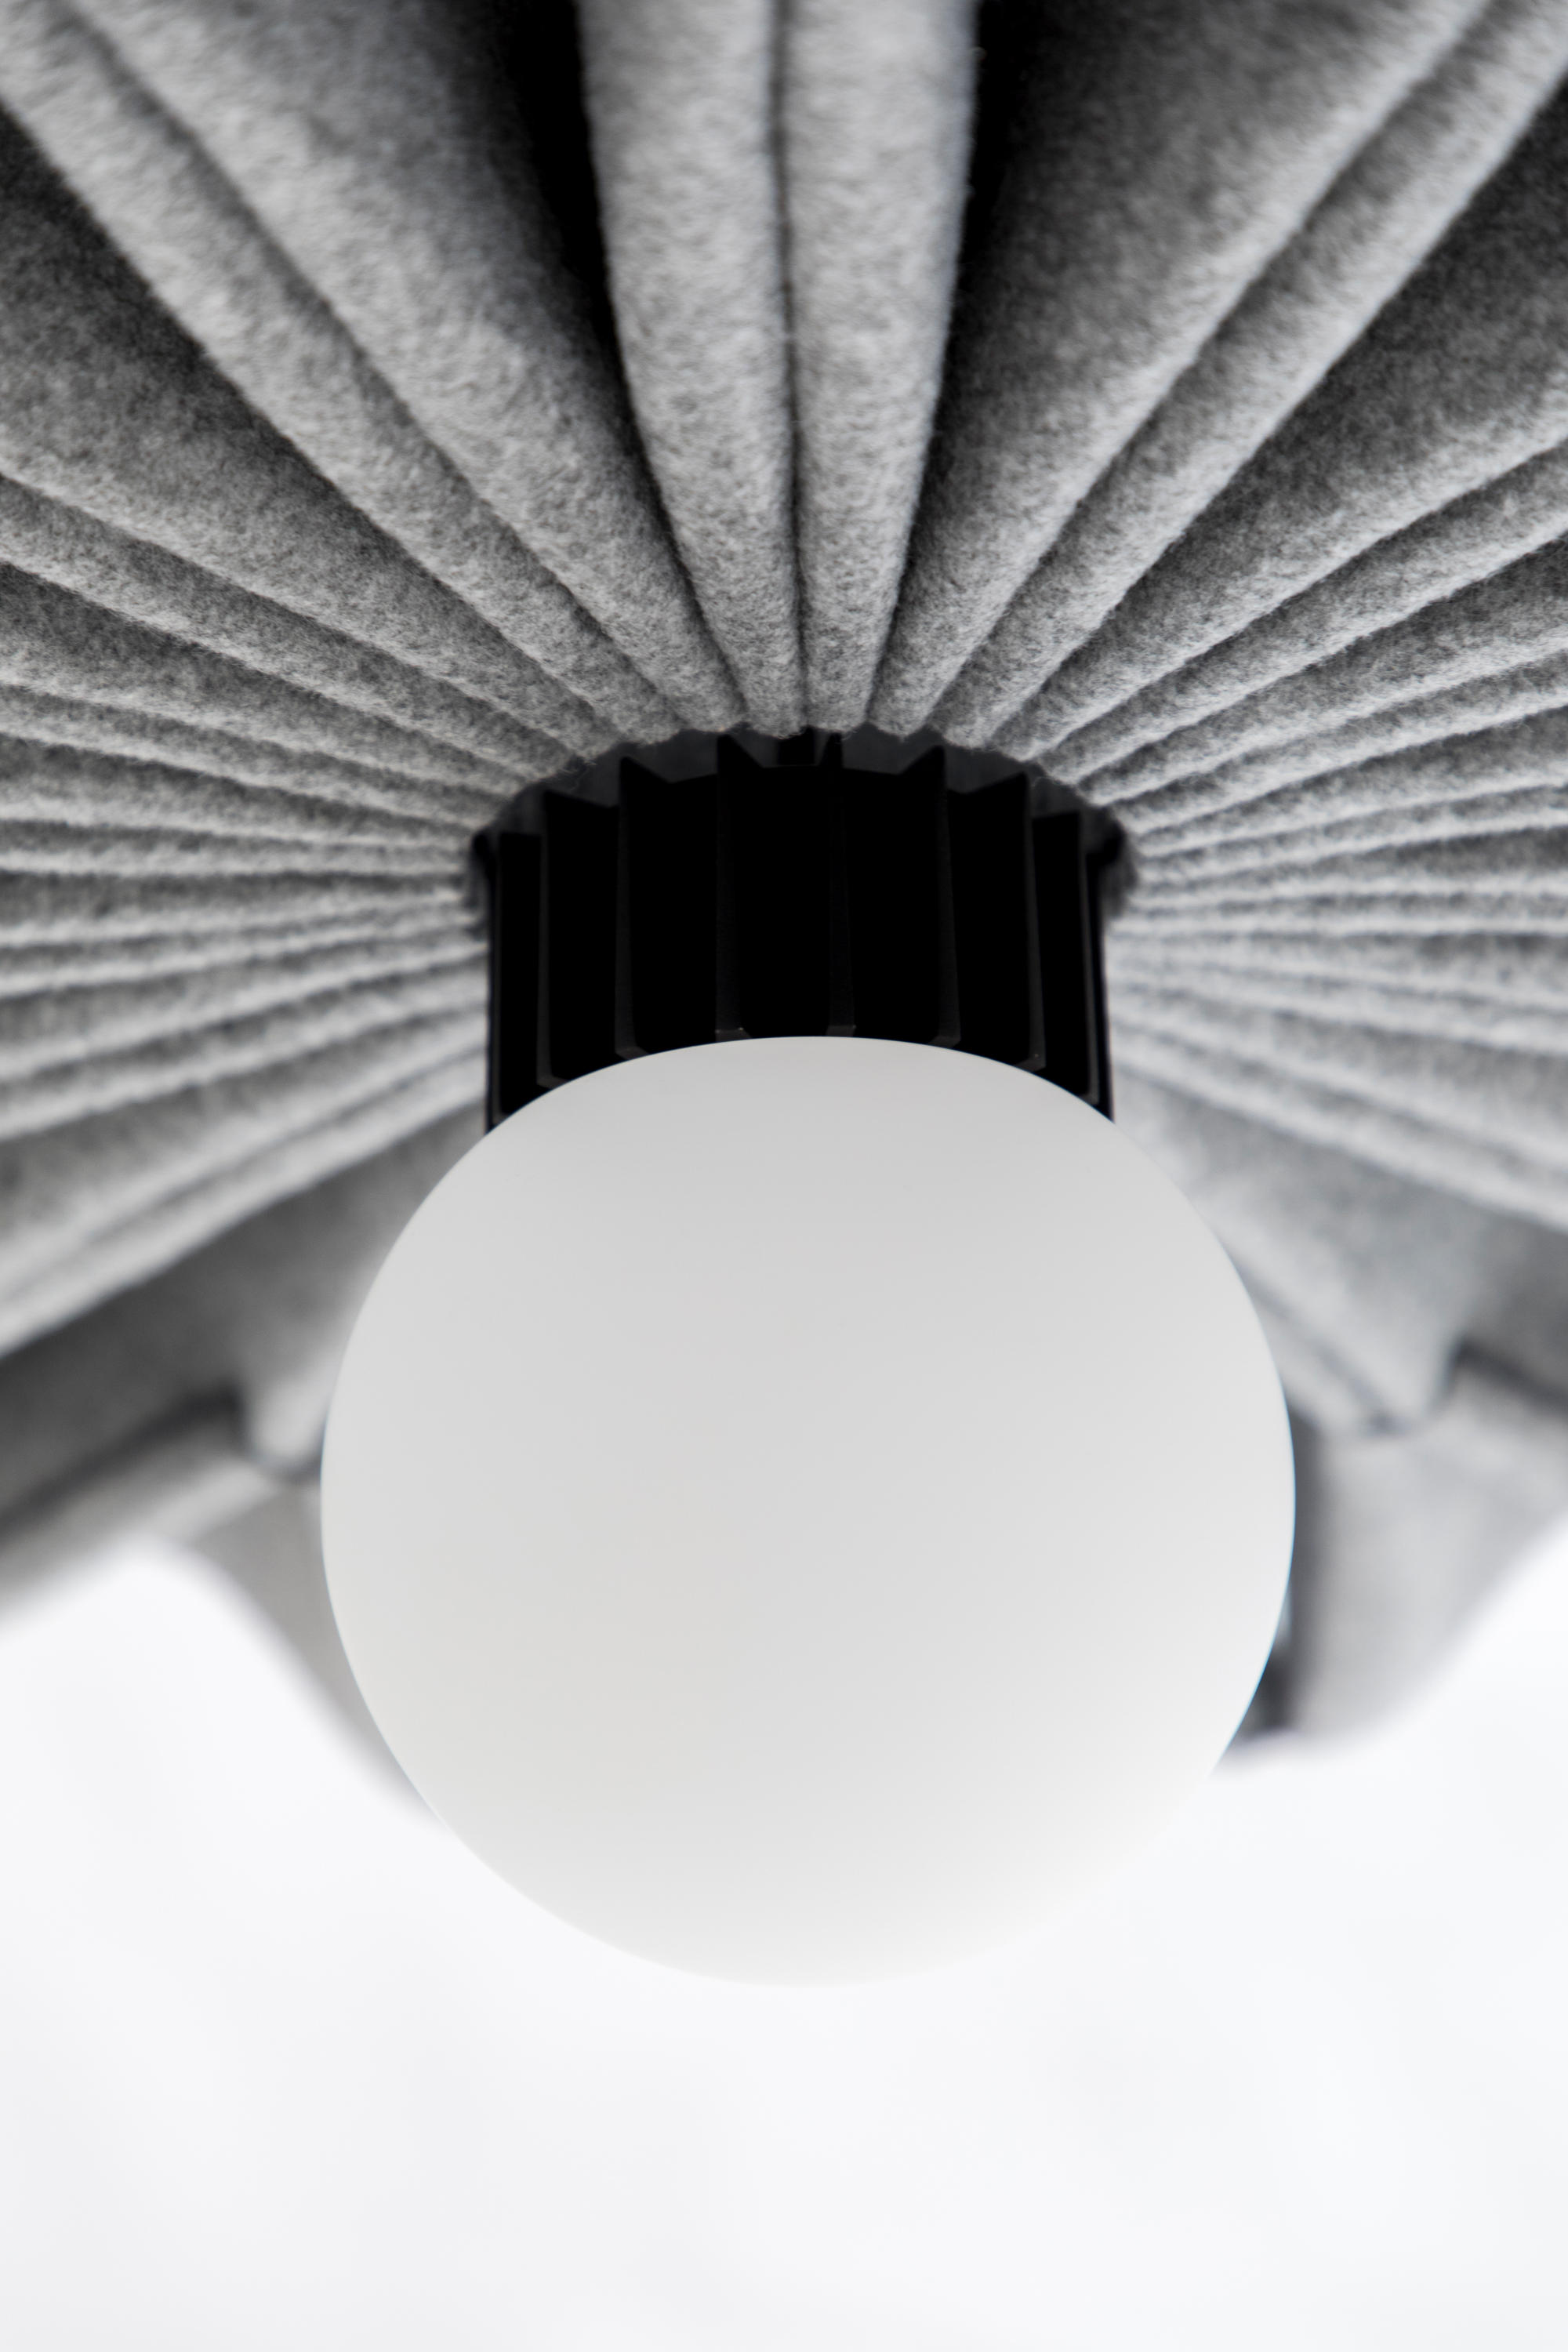 BuzziPleat LED Lamp by 13&9 for BuzziSpace